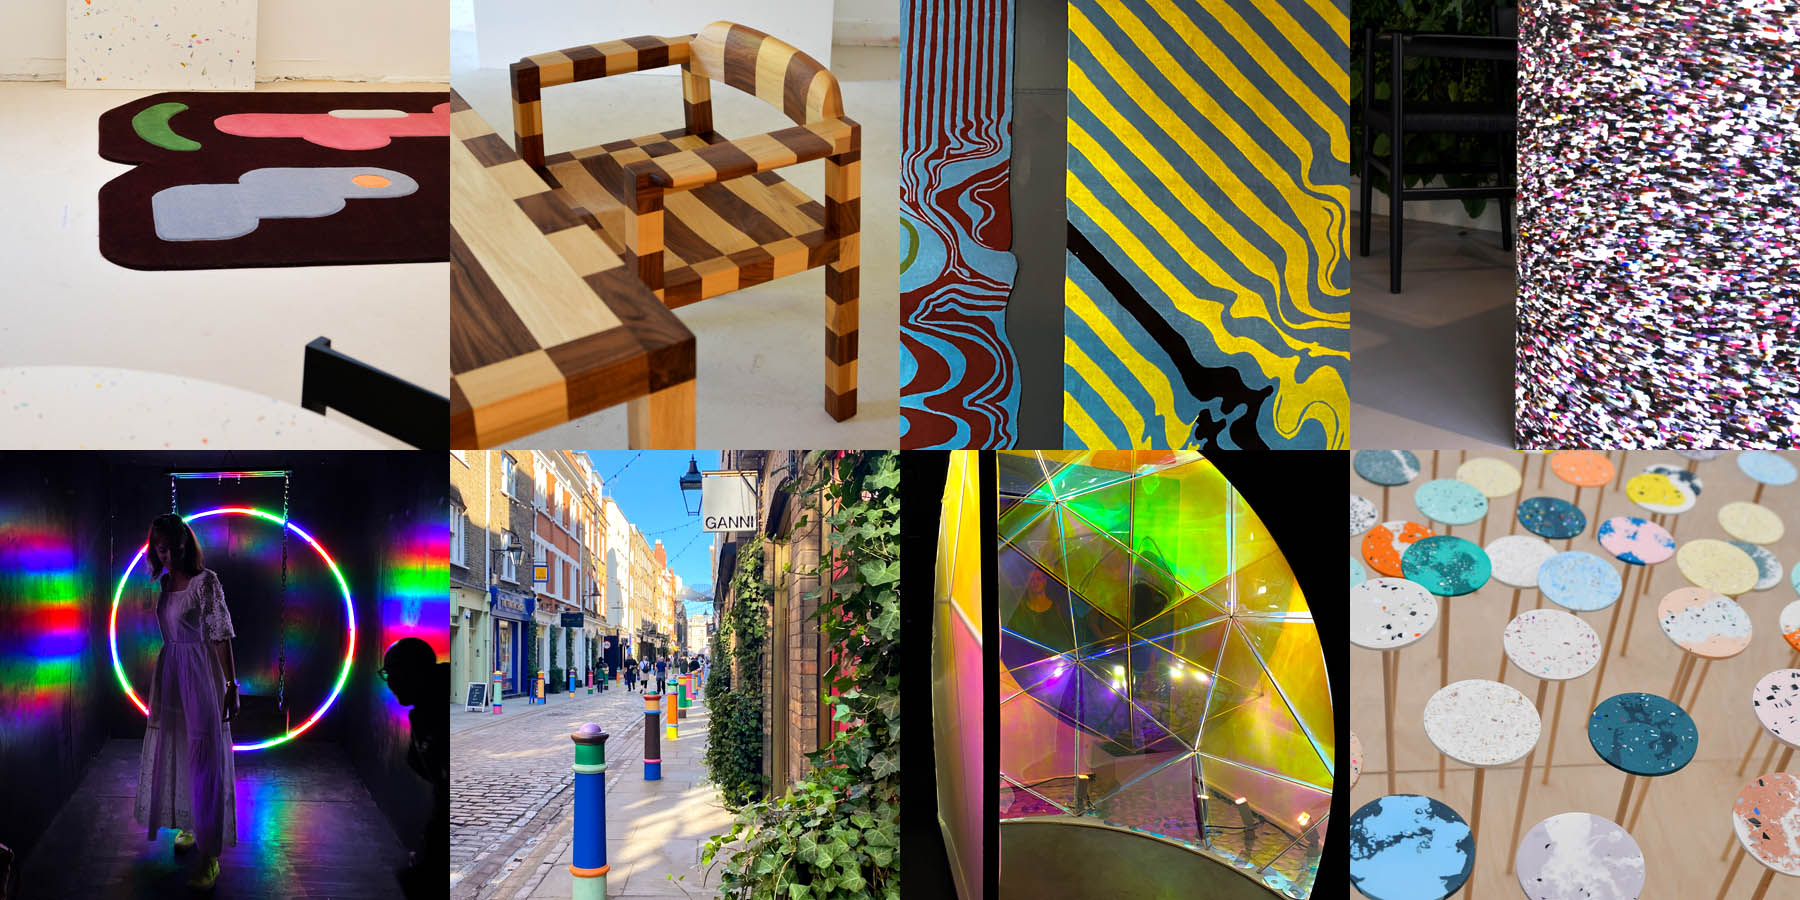 A selection of images from The Future of Home by Local Heroes, London Design 2021, EDGE showroom, Floral Street, London and Planted.